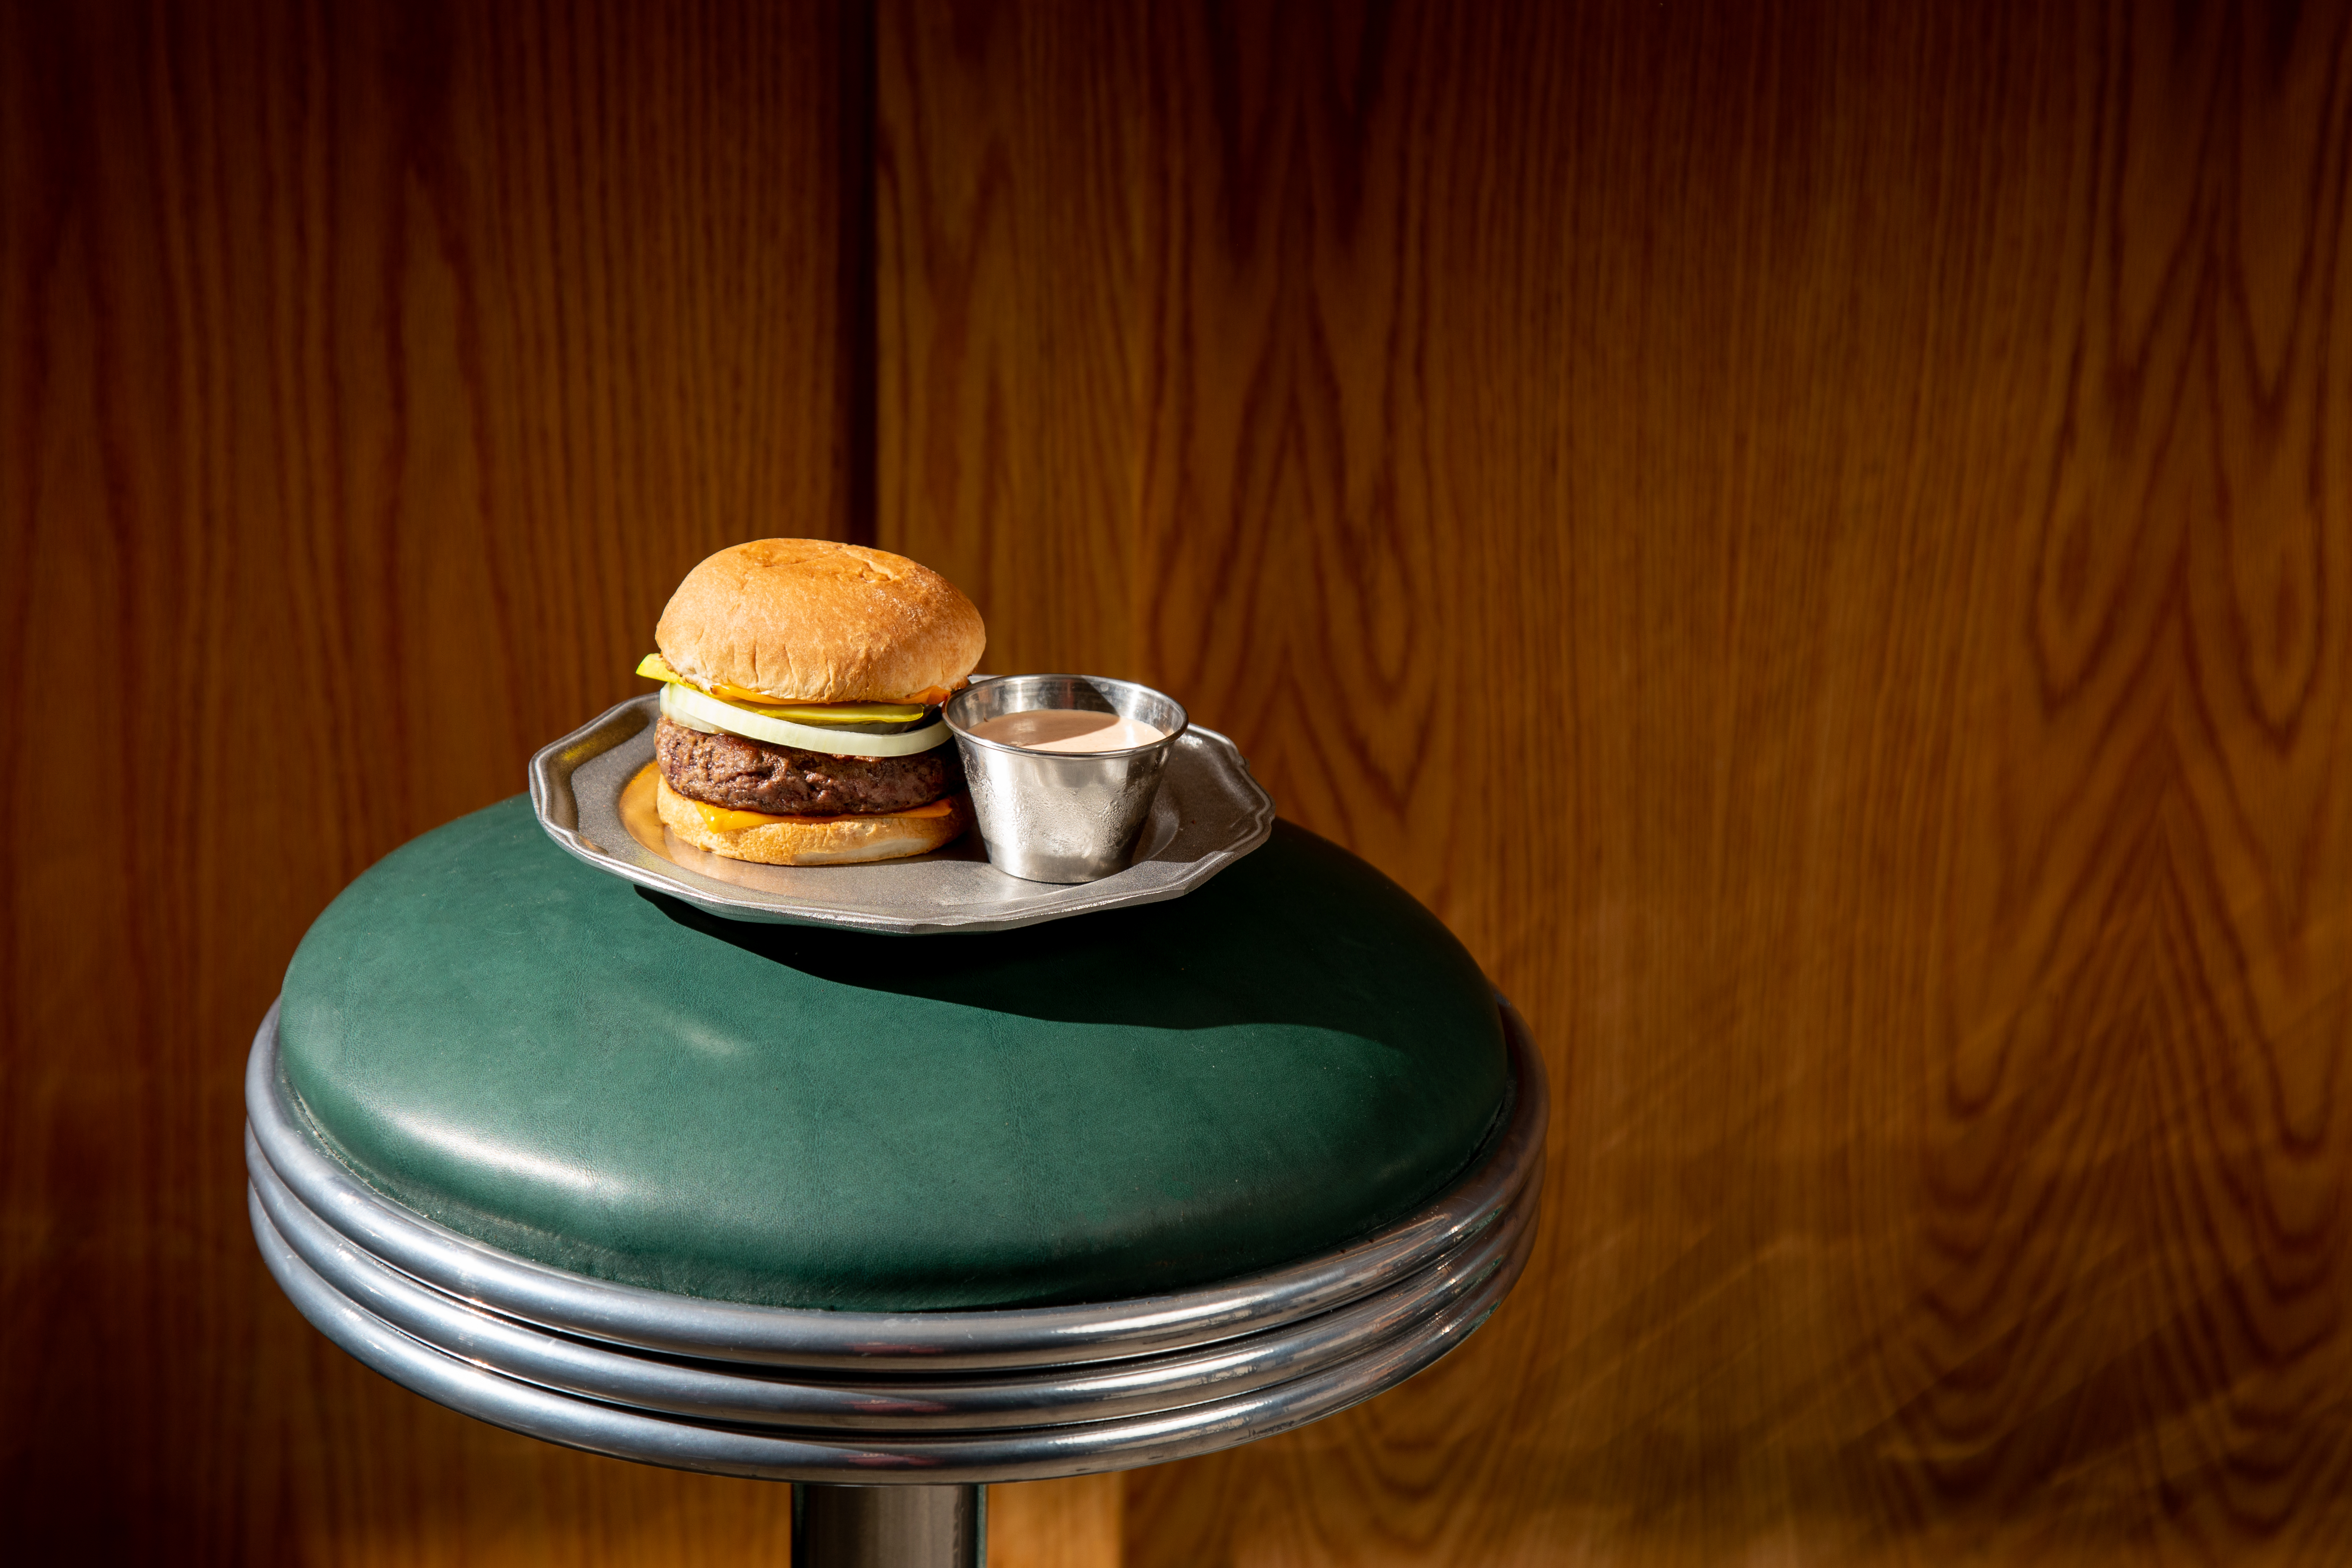 A traditional burger with sauce on the side on a silver platter is sitting on top of a green leather diner stool.